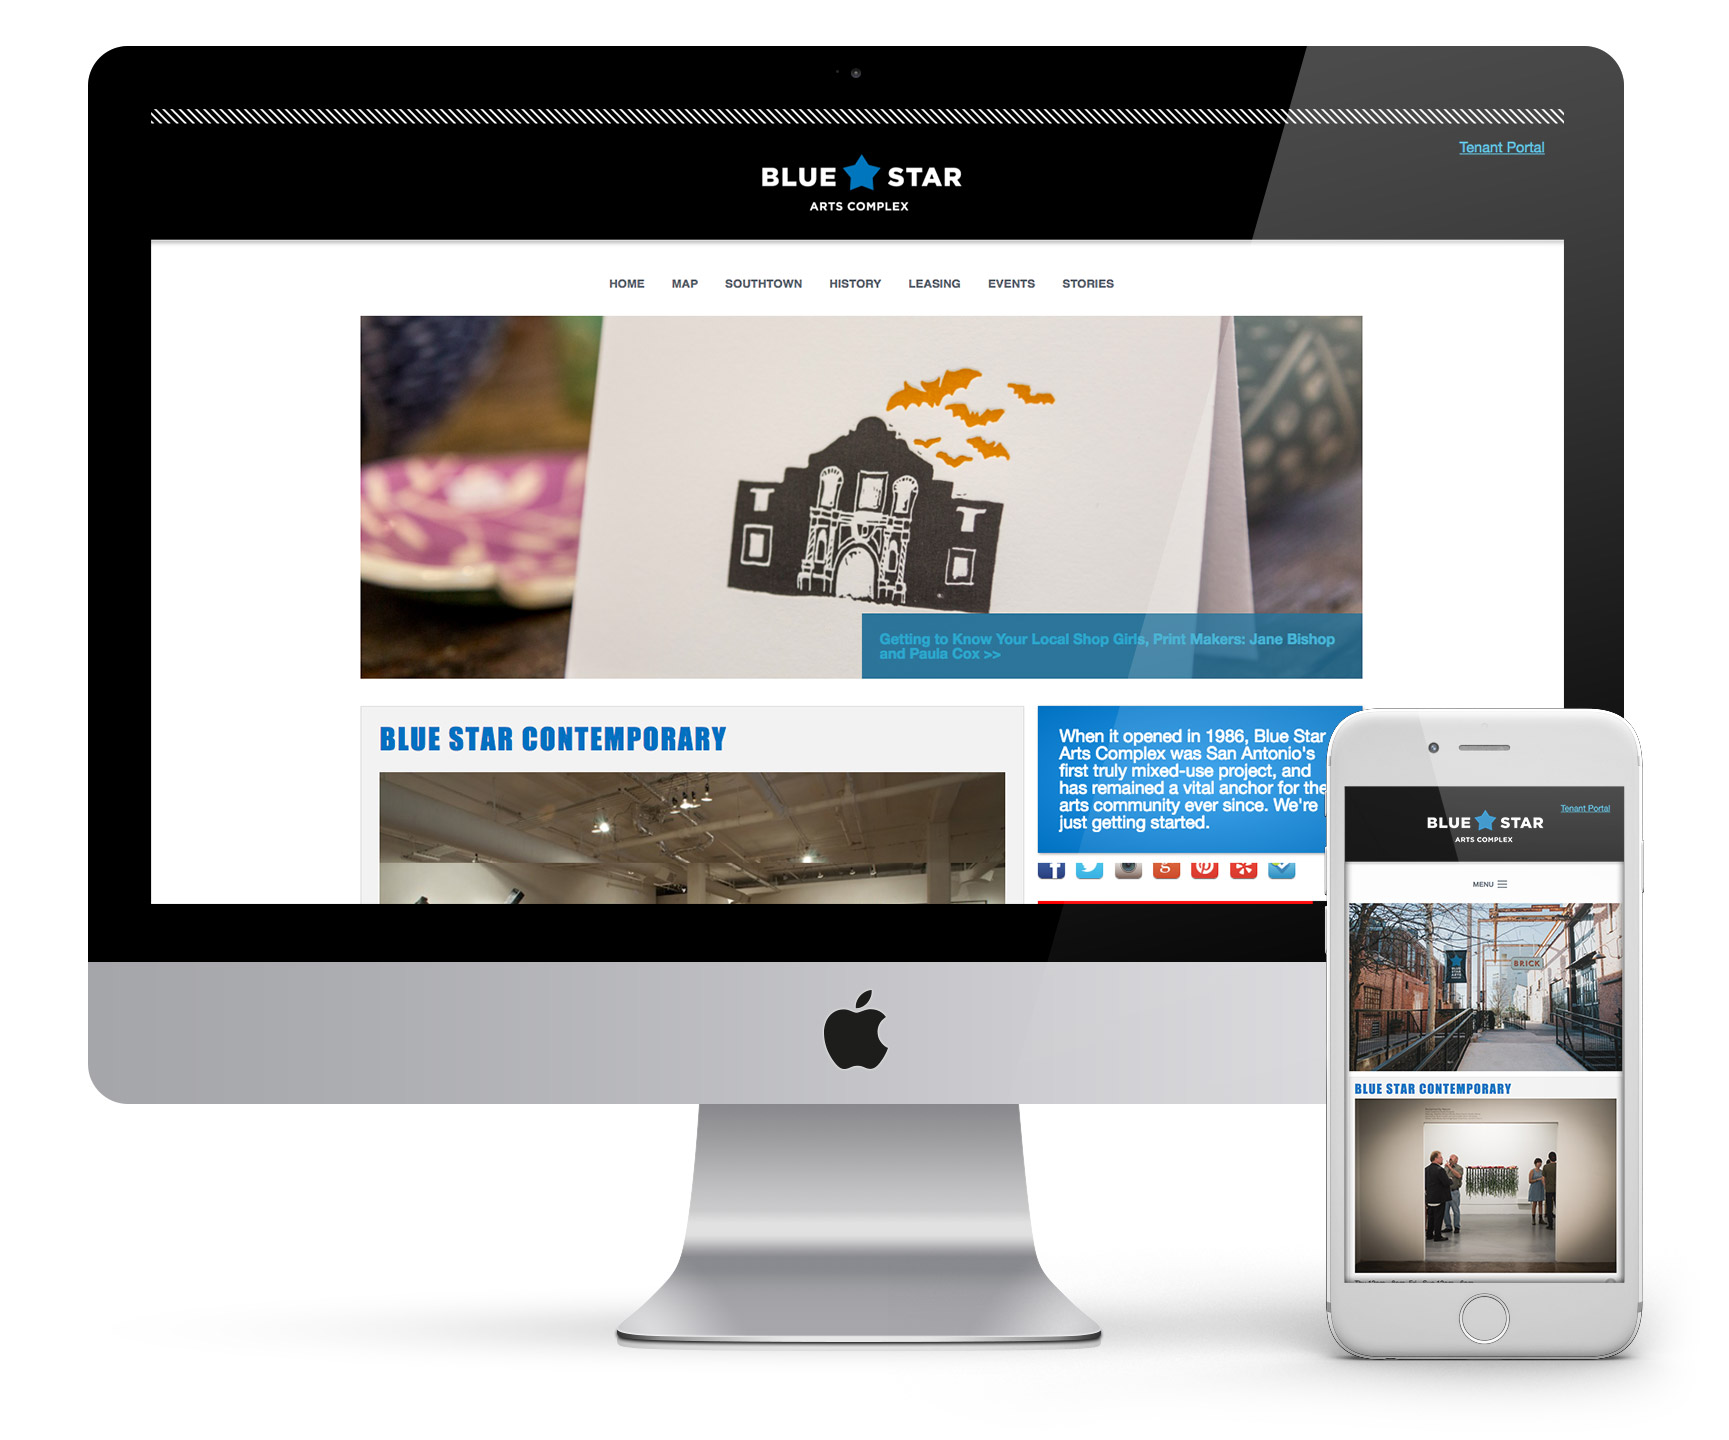 Blue Star Arts Complex Website